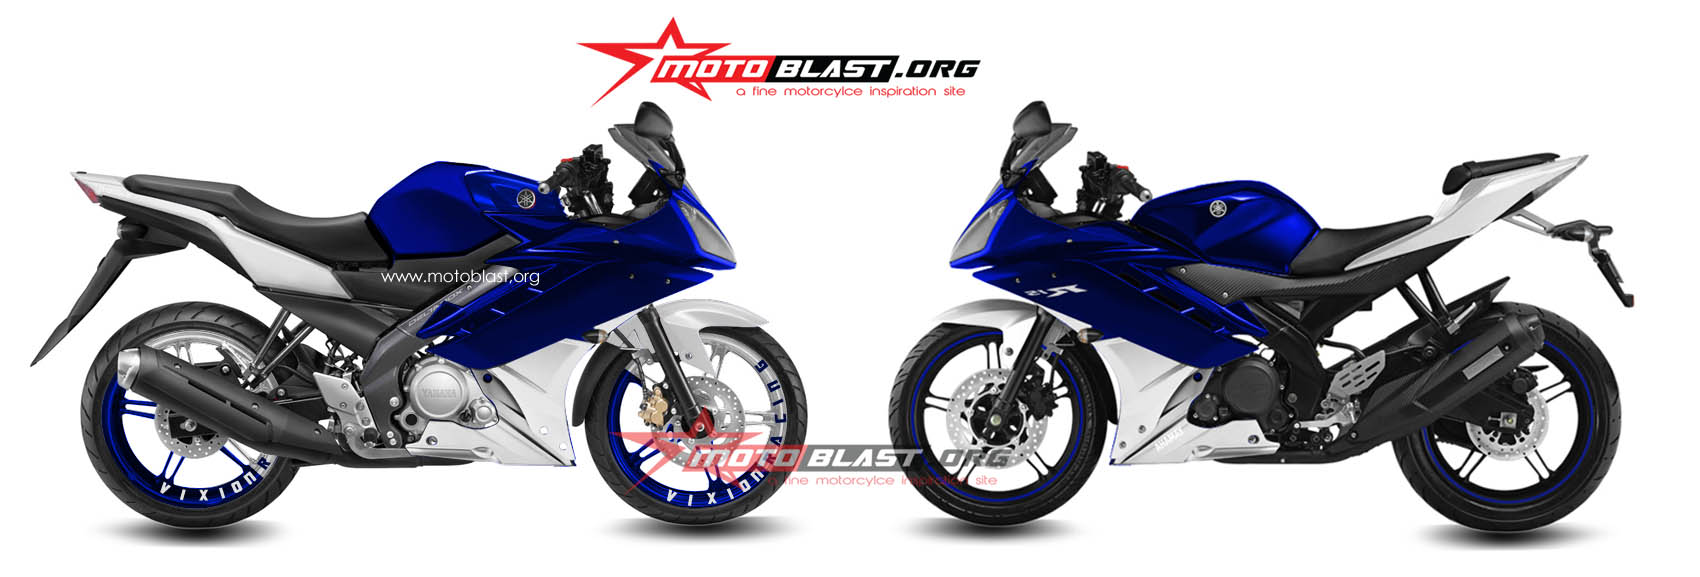 kompare - yamaha-new-vixion-halffairing R15 vs yamaha R15 indonesia